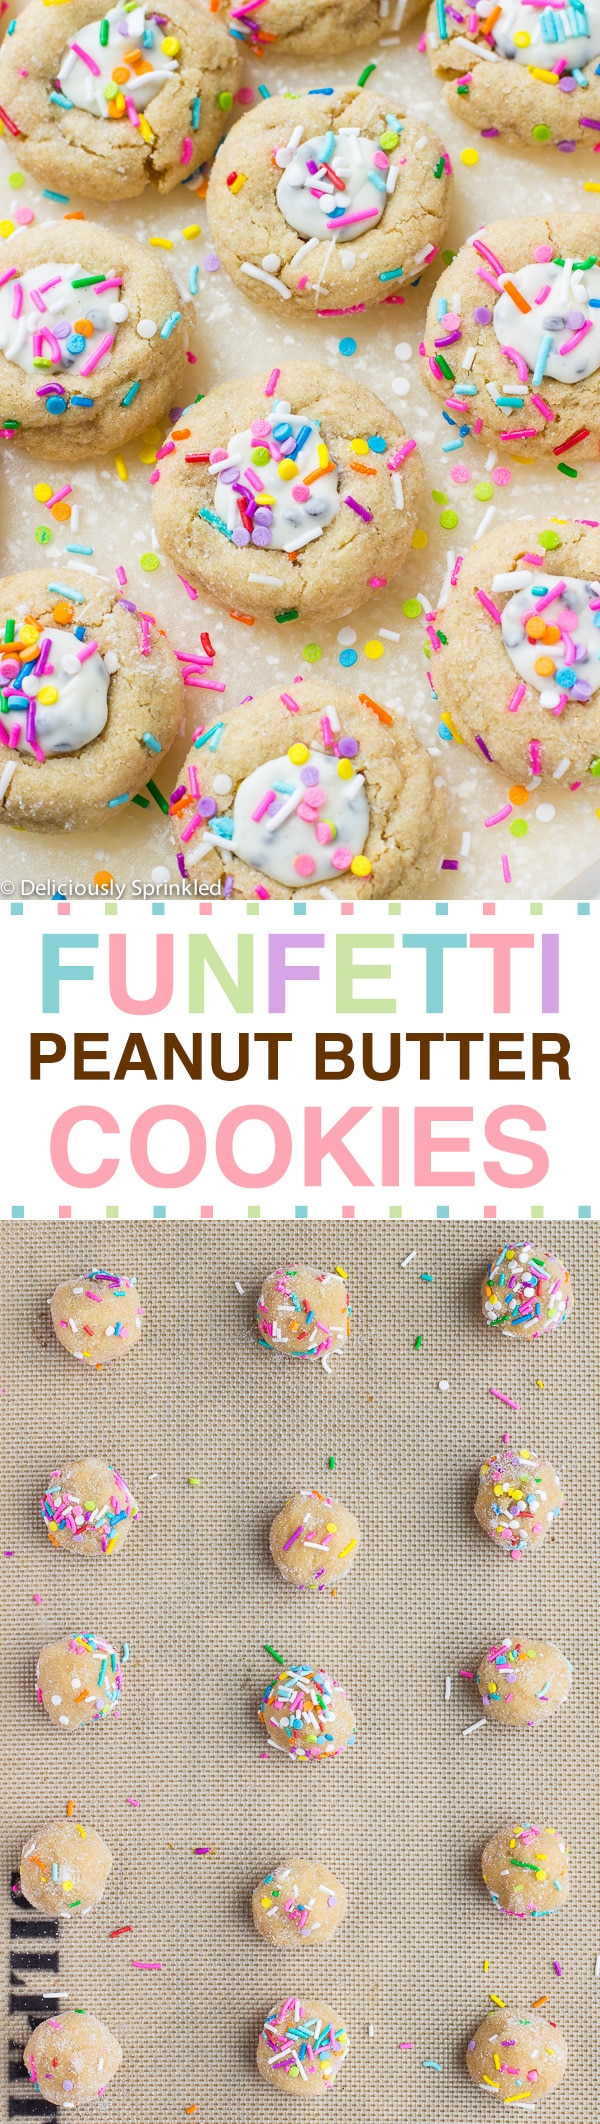 FUNFETTI PEANUT BUTTER COOKIE RECIPE